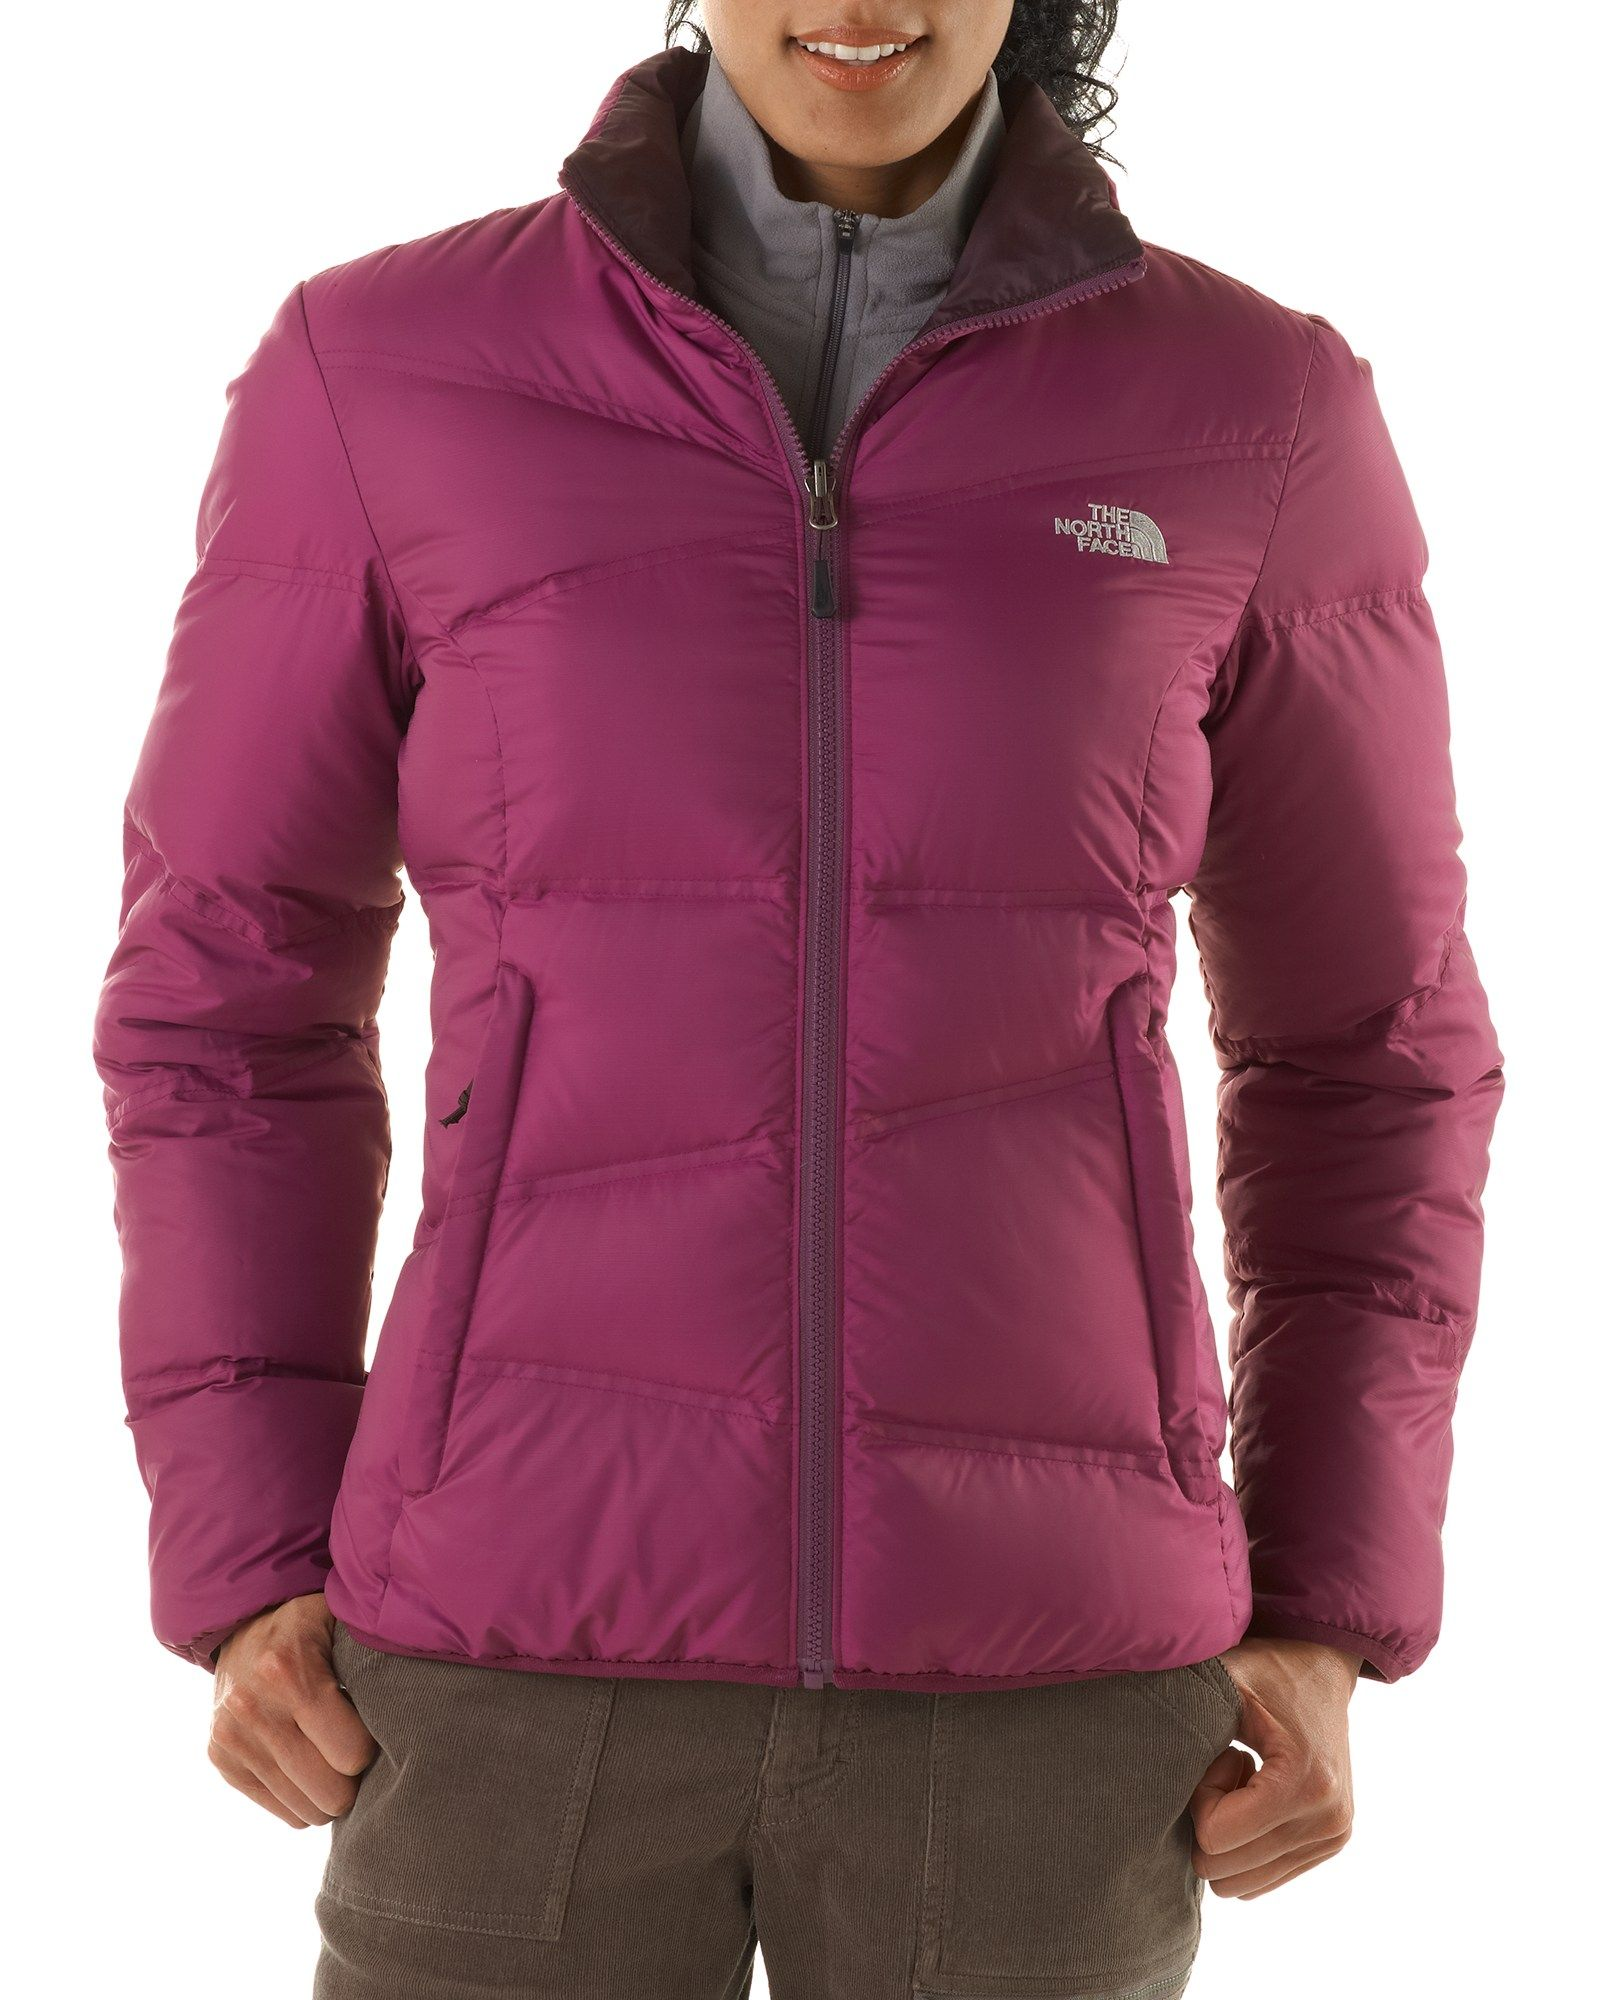 The North Face Reversible Down Jacket Women S Rei Co Op Jackets For Women Jackets Down Jacket [ 2000 x 1616 Pixel ]